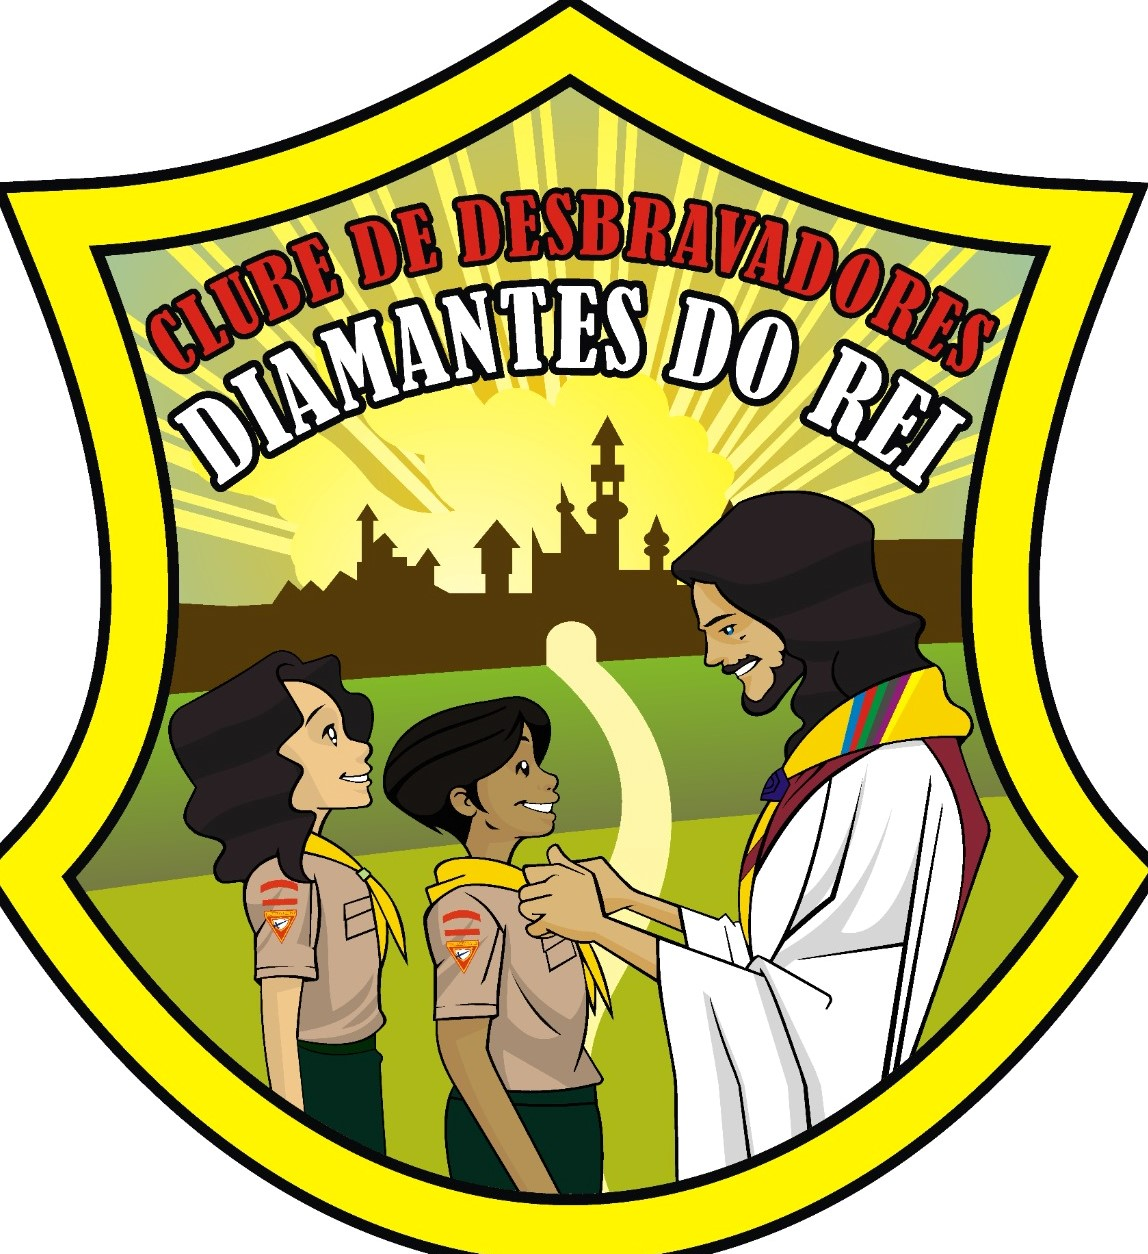 DIAMANTES DO REI